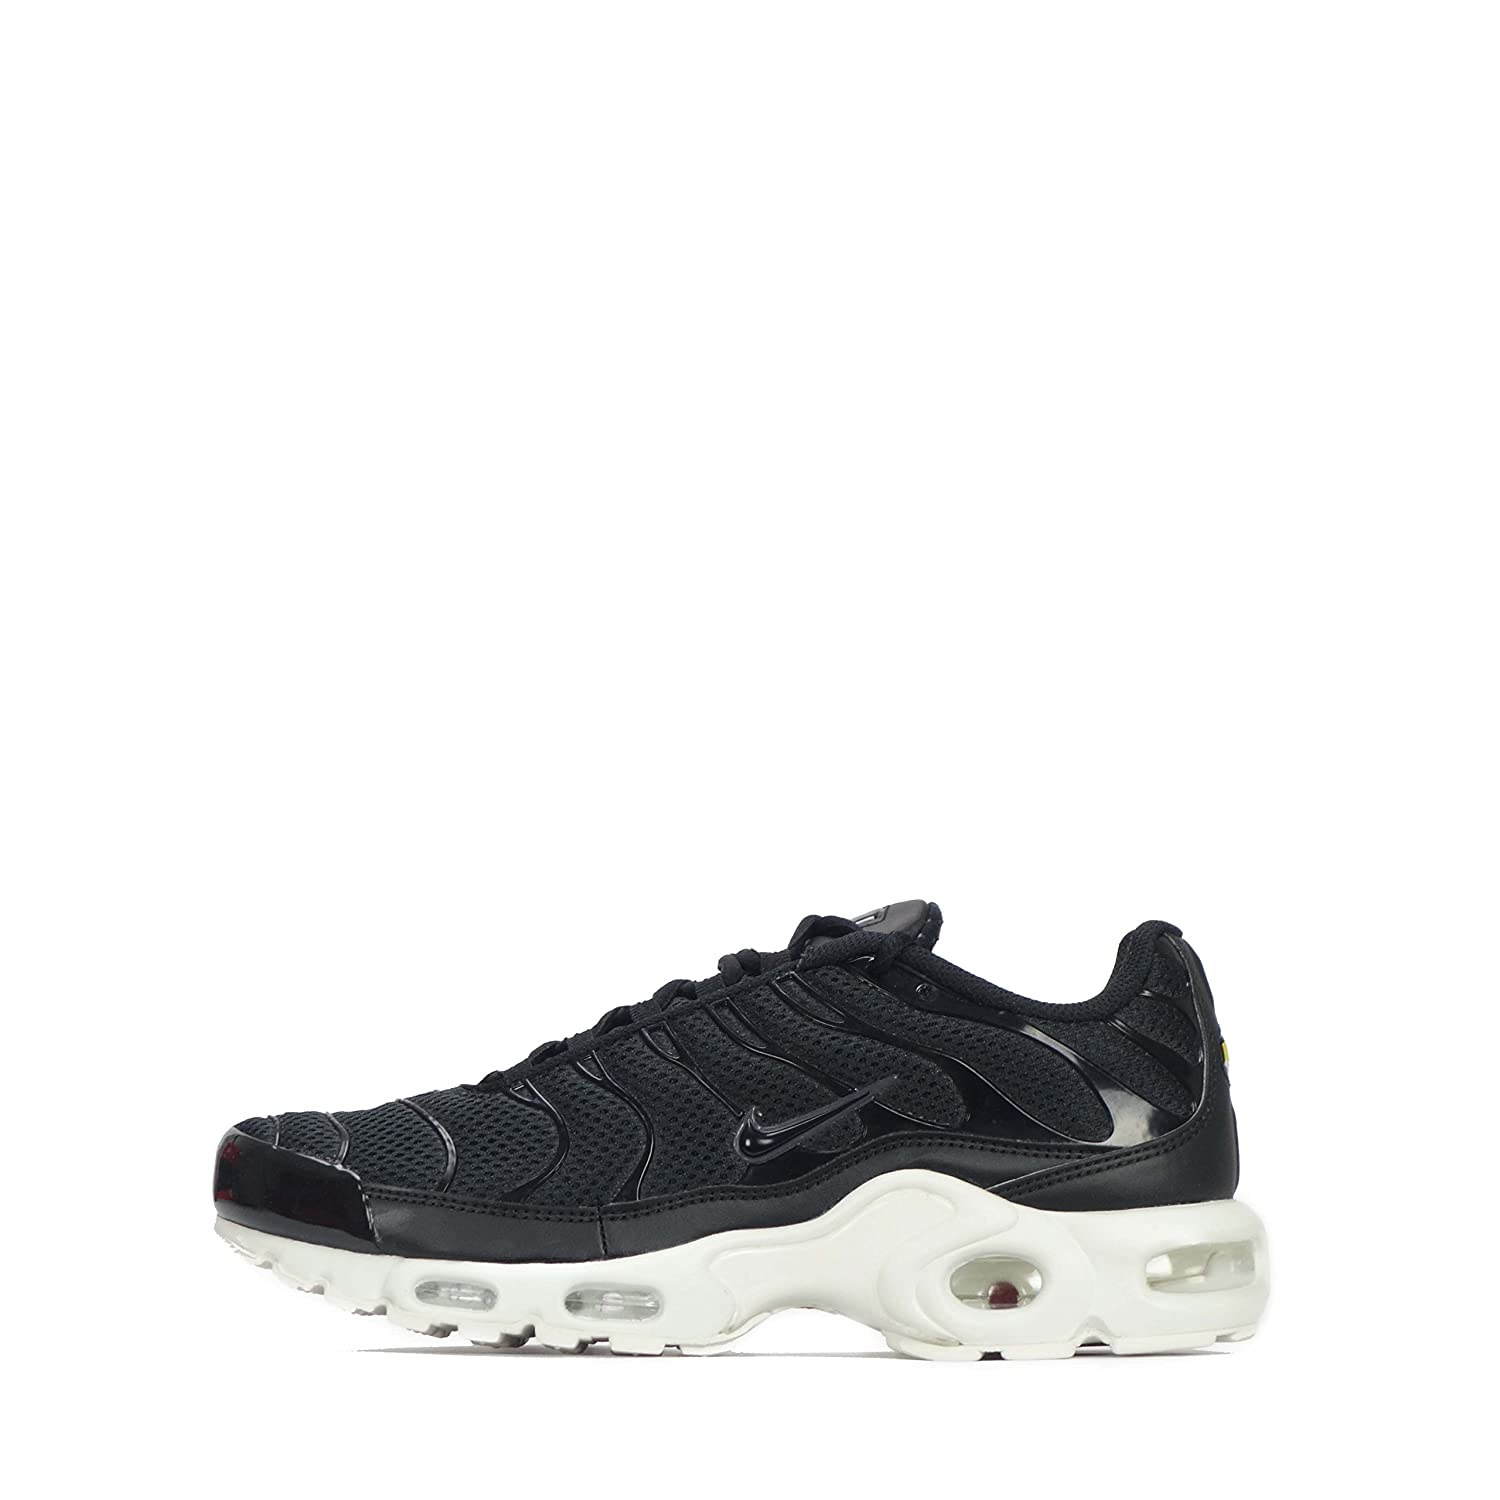 new product 7e7fc 670c8 Amazon.com  Nike Air Max Plus Breathe TN1 Tuned Mens Sneaker (7.5 D(M) US)  BlackBlackWhite  Road Running